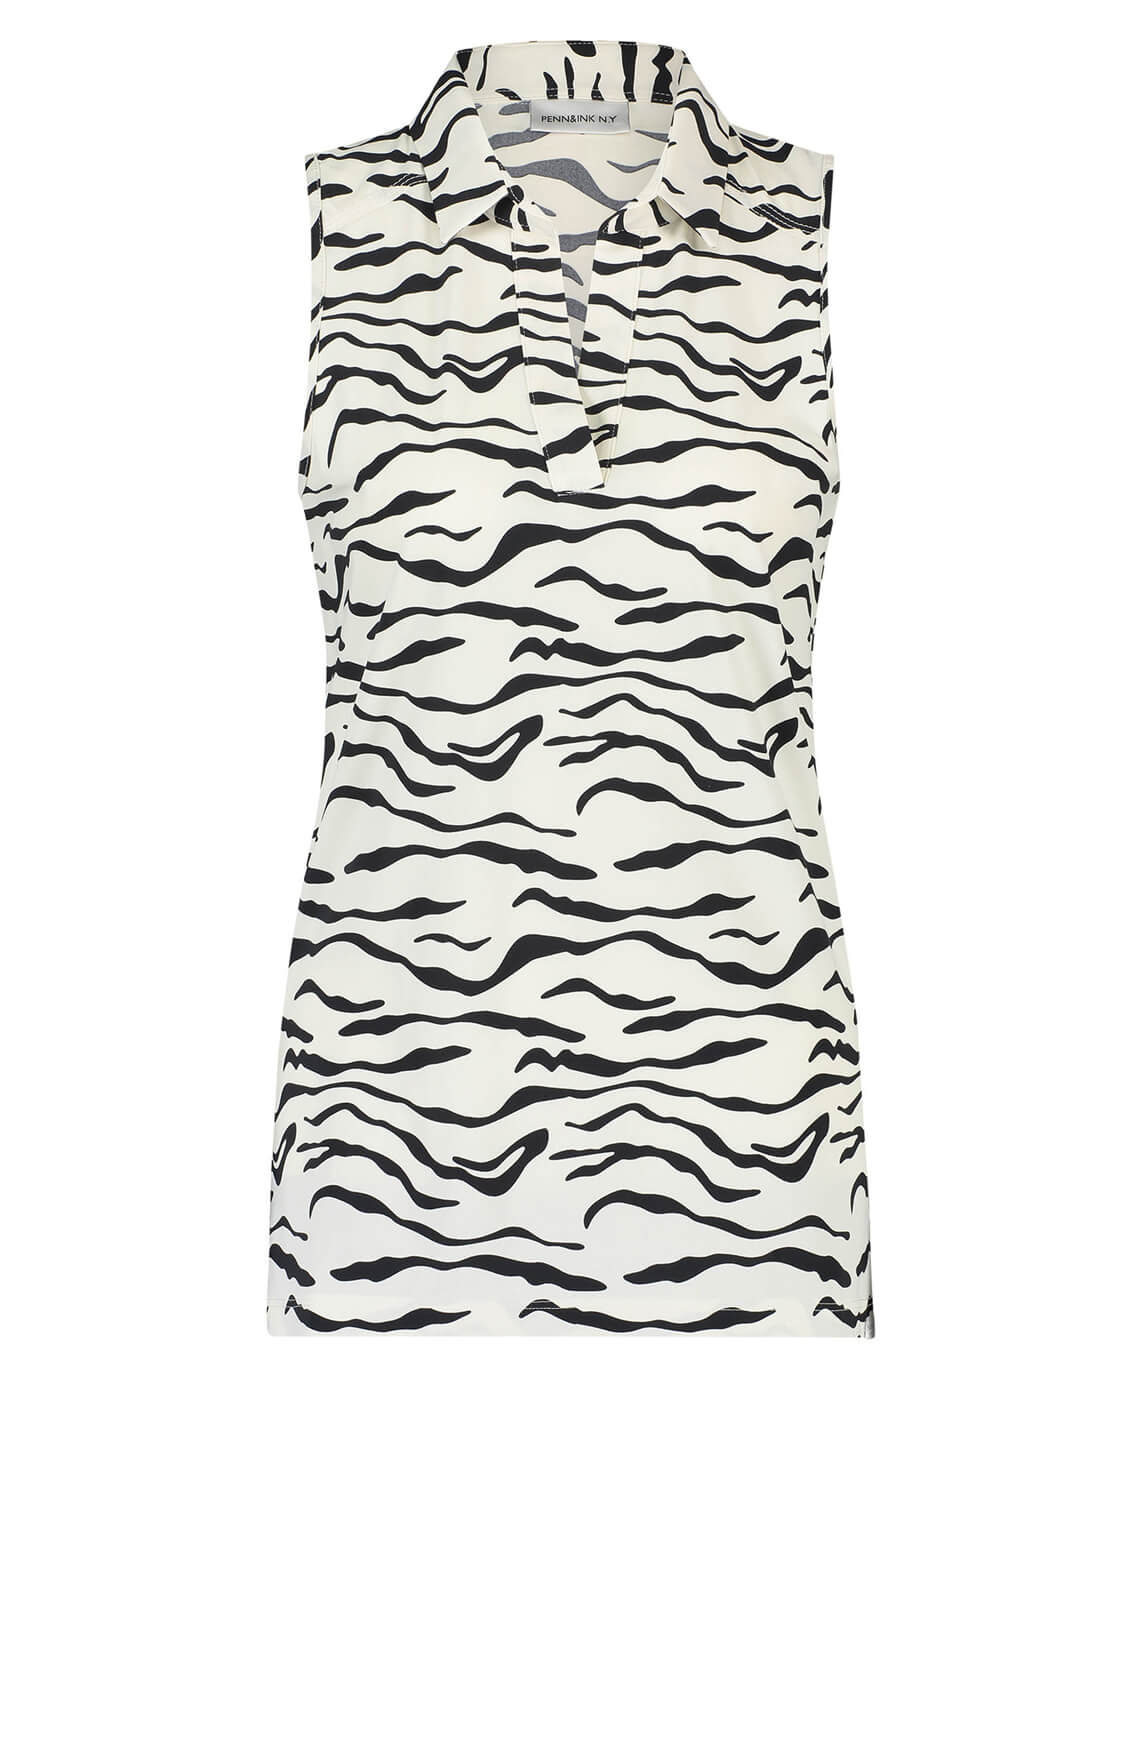 Penn & Ink Dames Mouwloze blouse met zebraprint wit